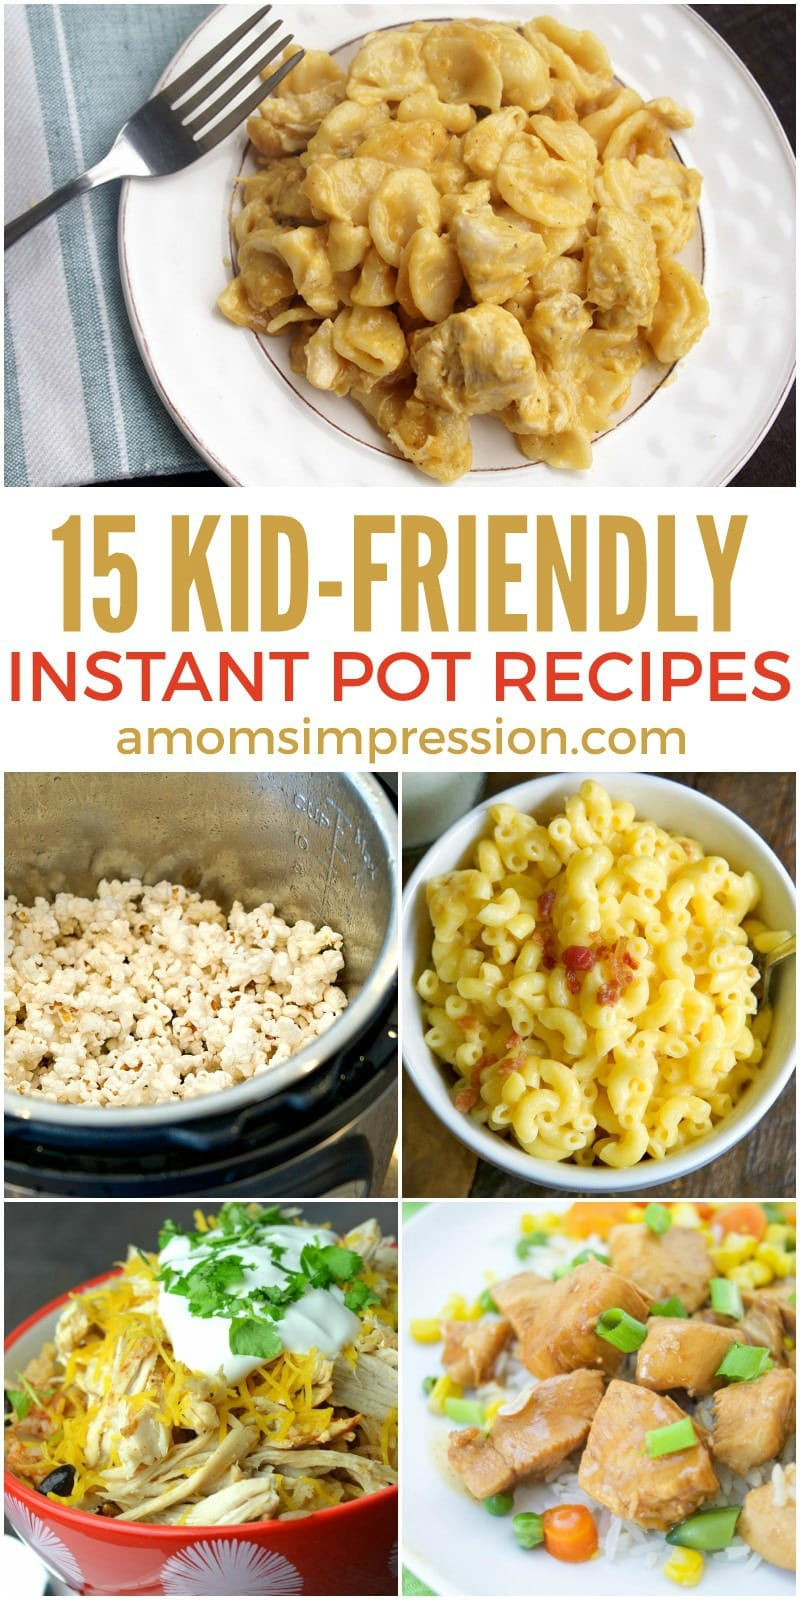 Busy parents will love the Instant Pot. Here are 15 quick and easy kid friendly Instant Pot recipes that your kids will devour!